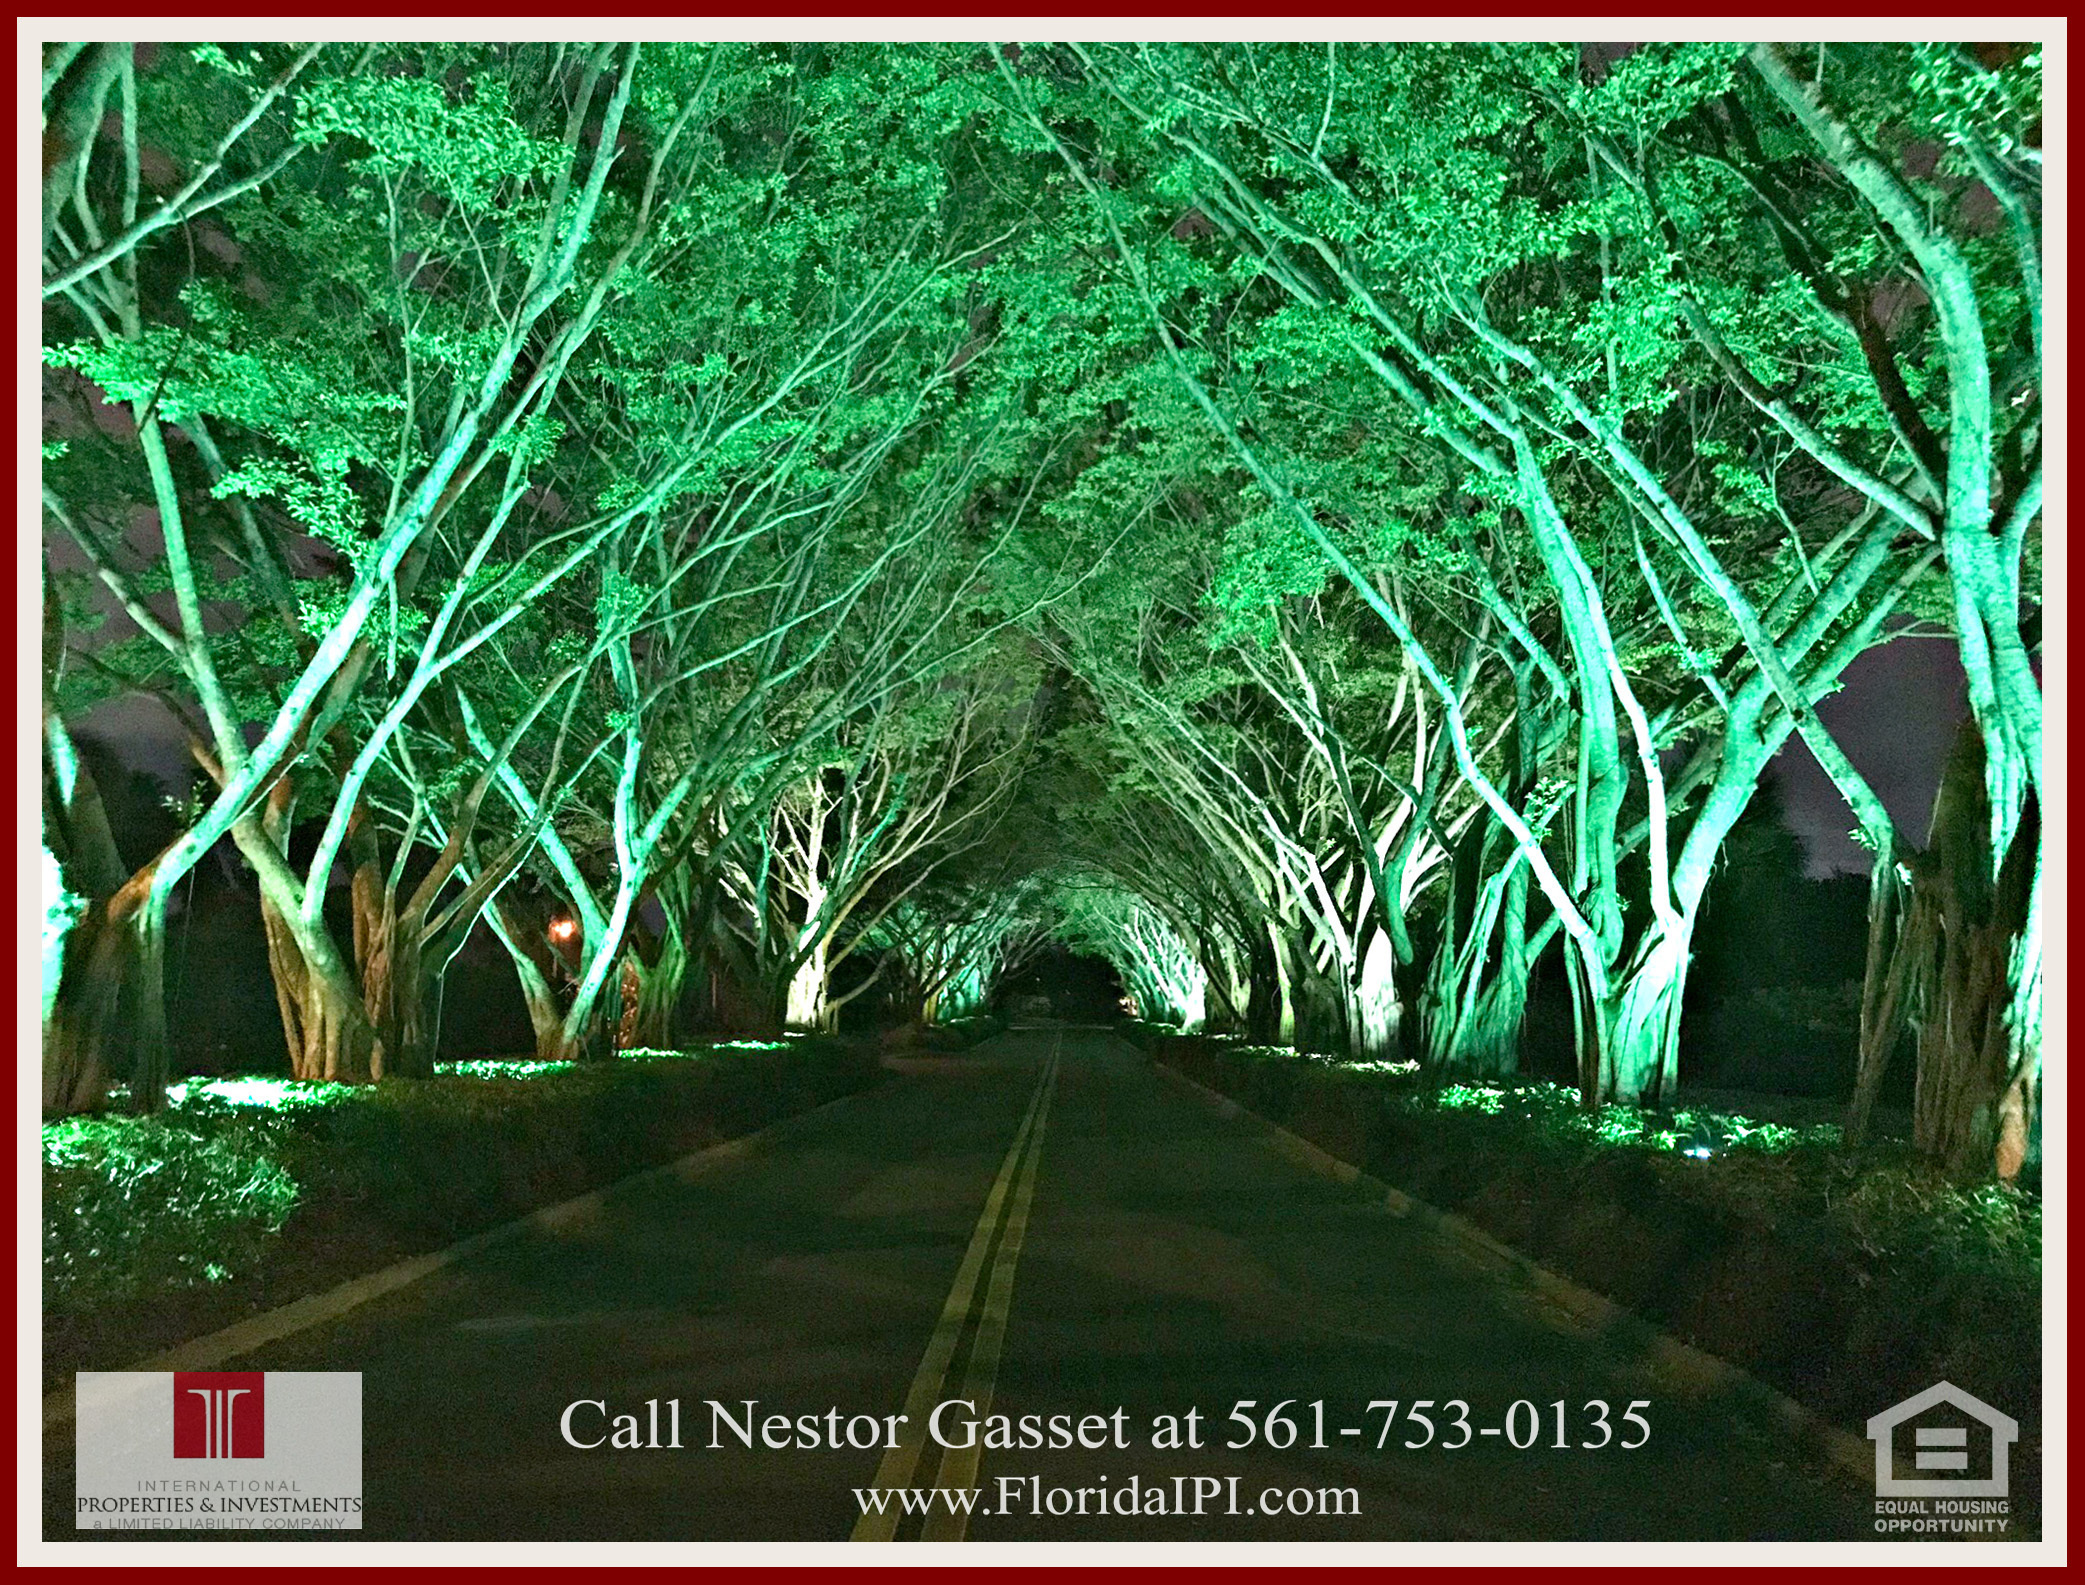 West Palm Beach Fl golf course community estate home for sale - Beautiful lighted tree lined streets will guide at night as you drive to this home for sale in The Preserve at Ironhorse.